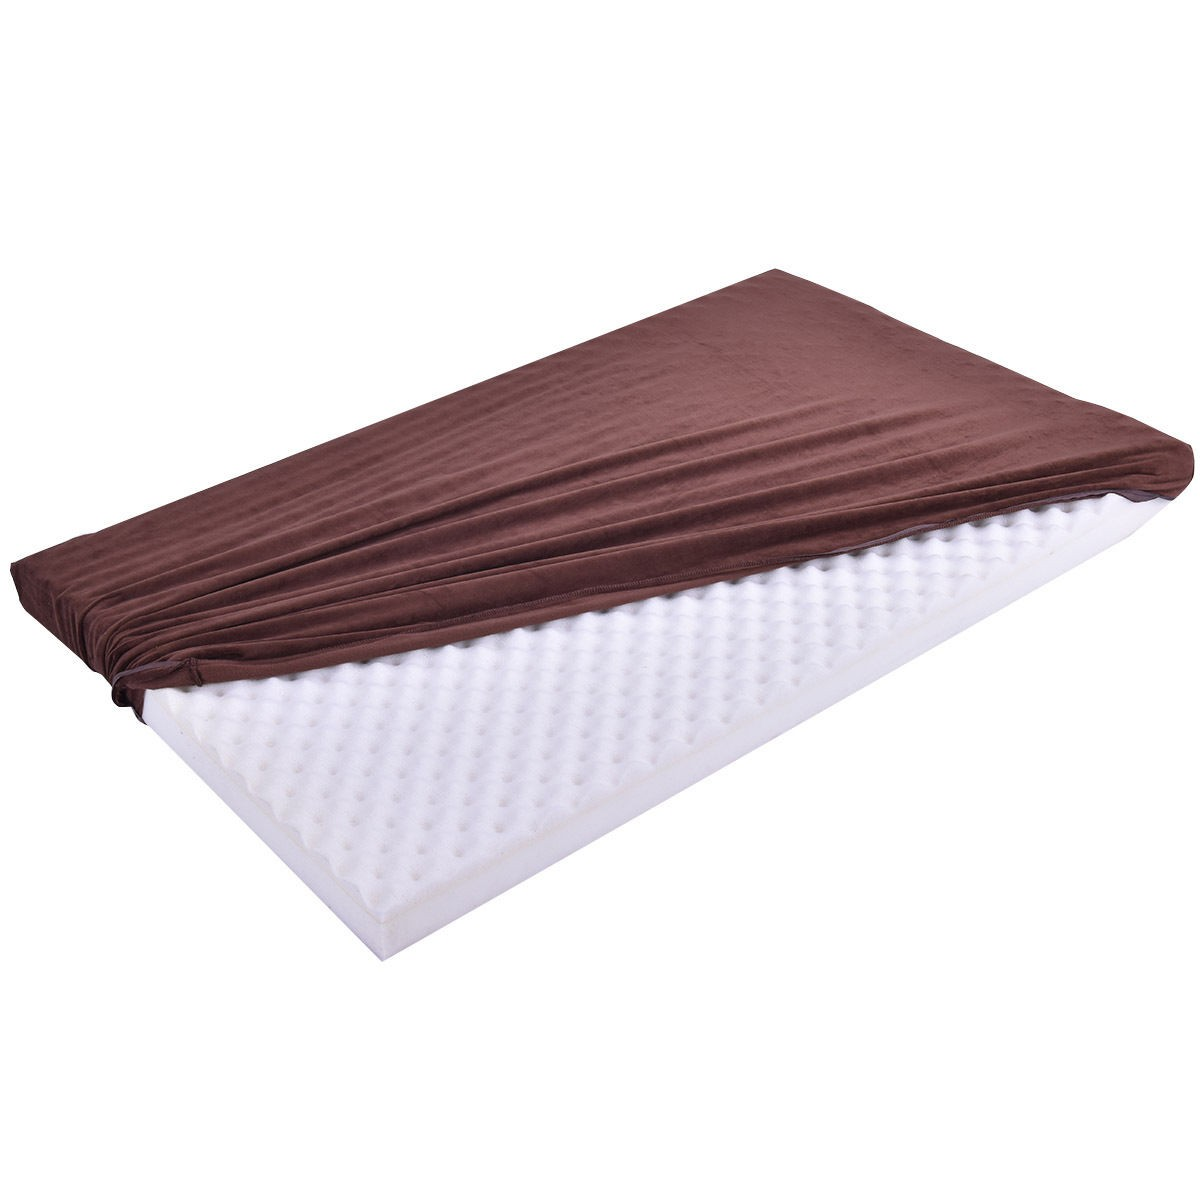 large memory velet foam pet bed dog cat puppy pad mat cushion w removable cover ebay. Black Bedroom Furniture Sets. Home Design Ideas